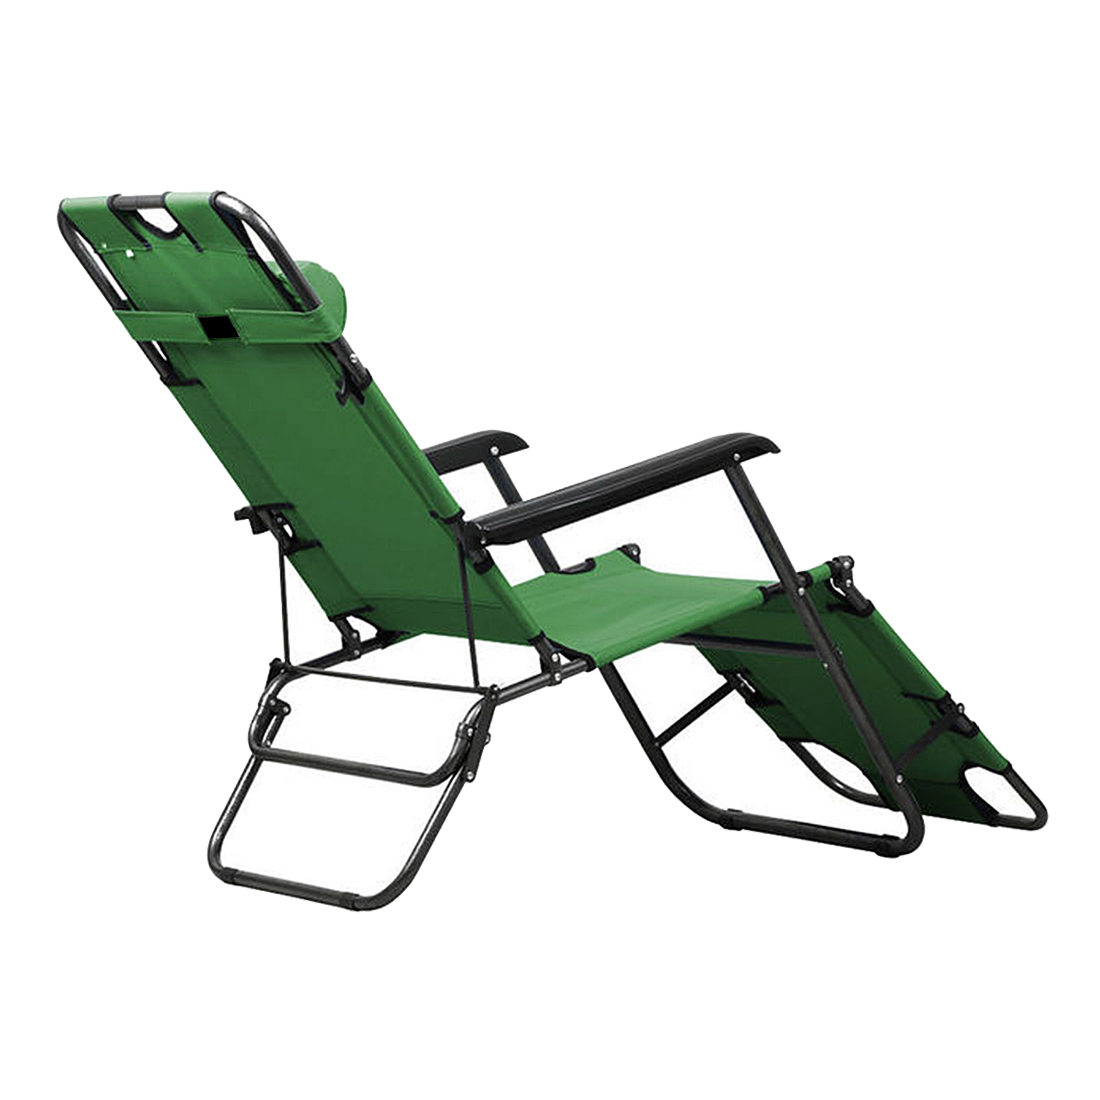 Metal Folding Chaise Lounge Chair Patio Outdoor Pool Beach Lawn Recliner  New Color:Army Green